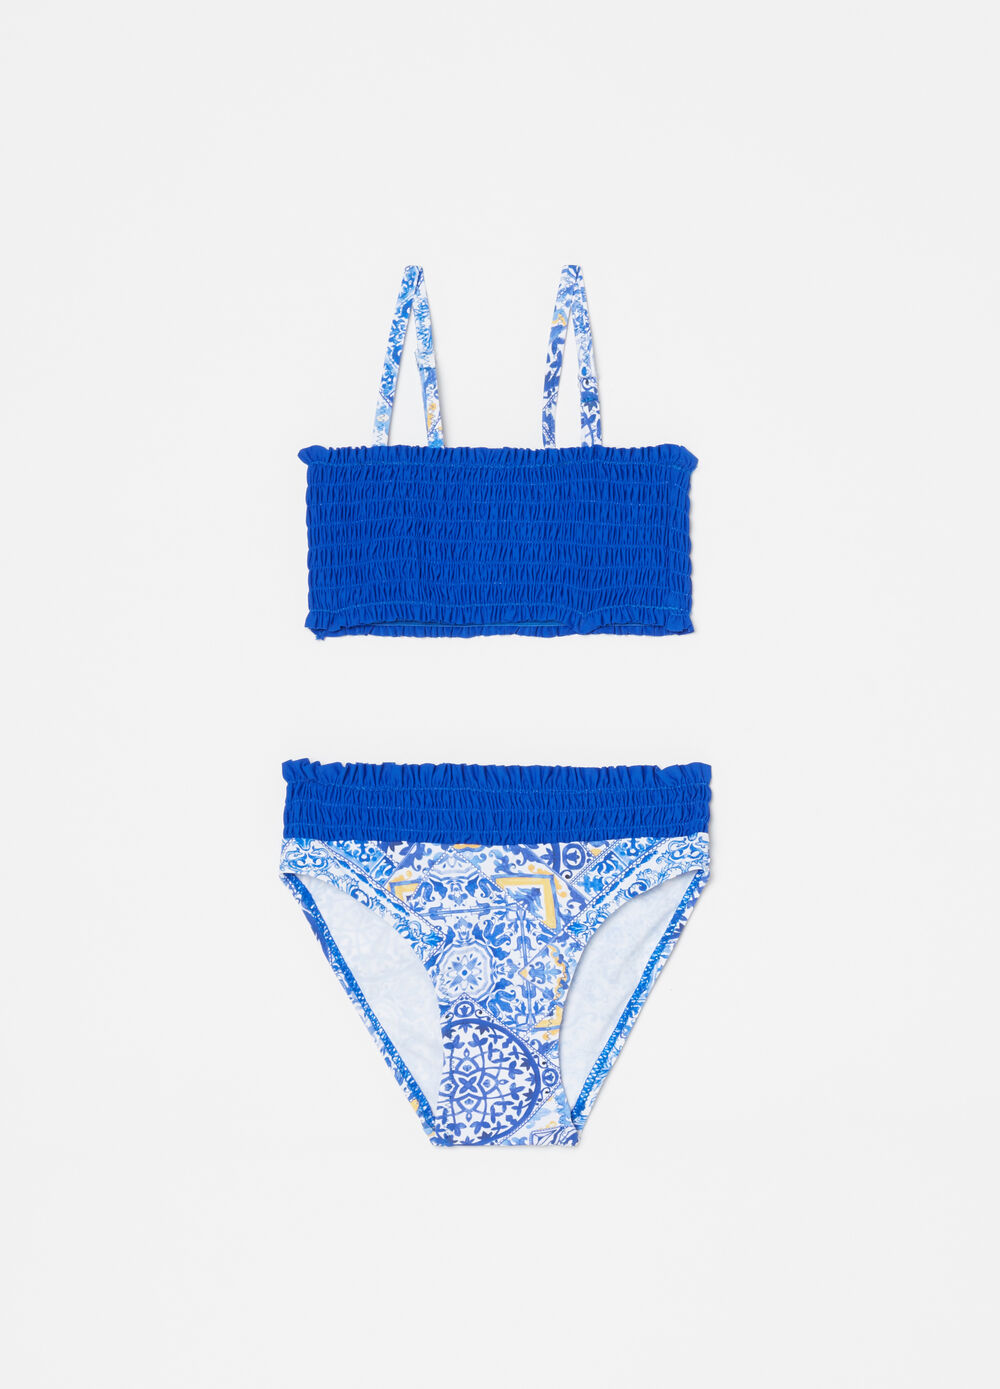 Bikini with top and bottom with pattern and smock stitch